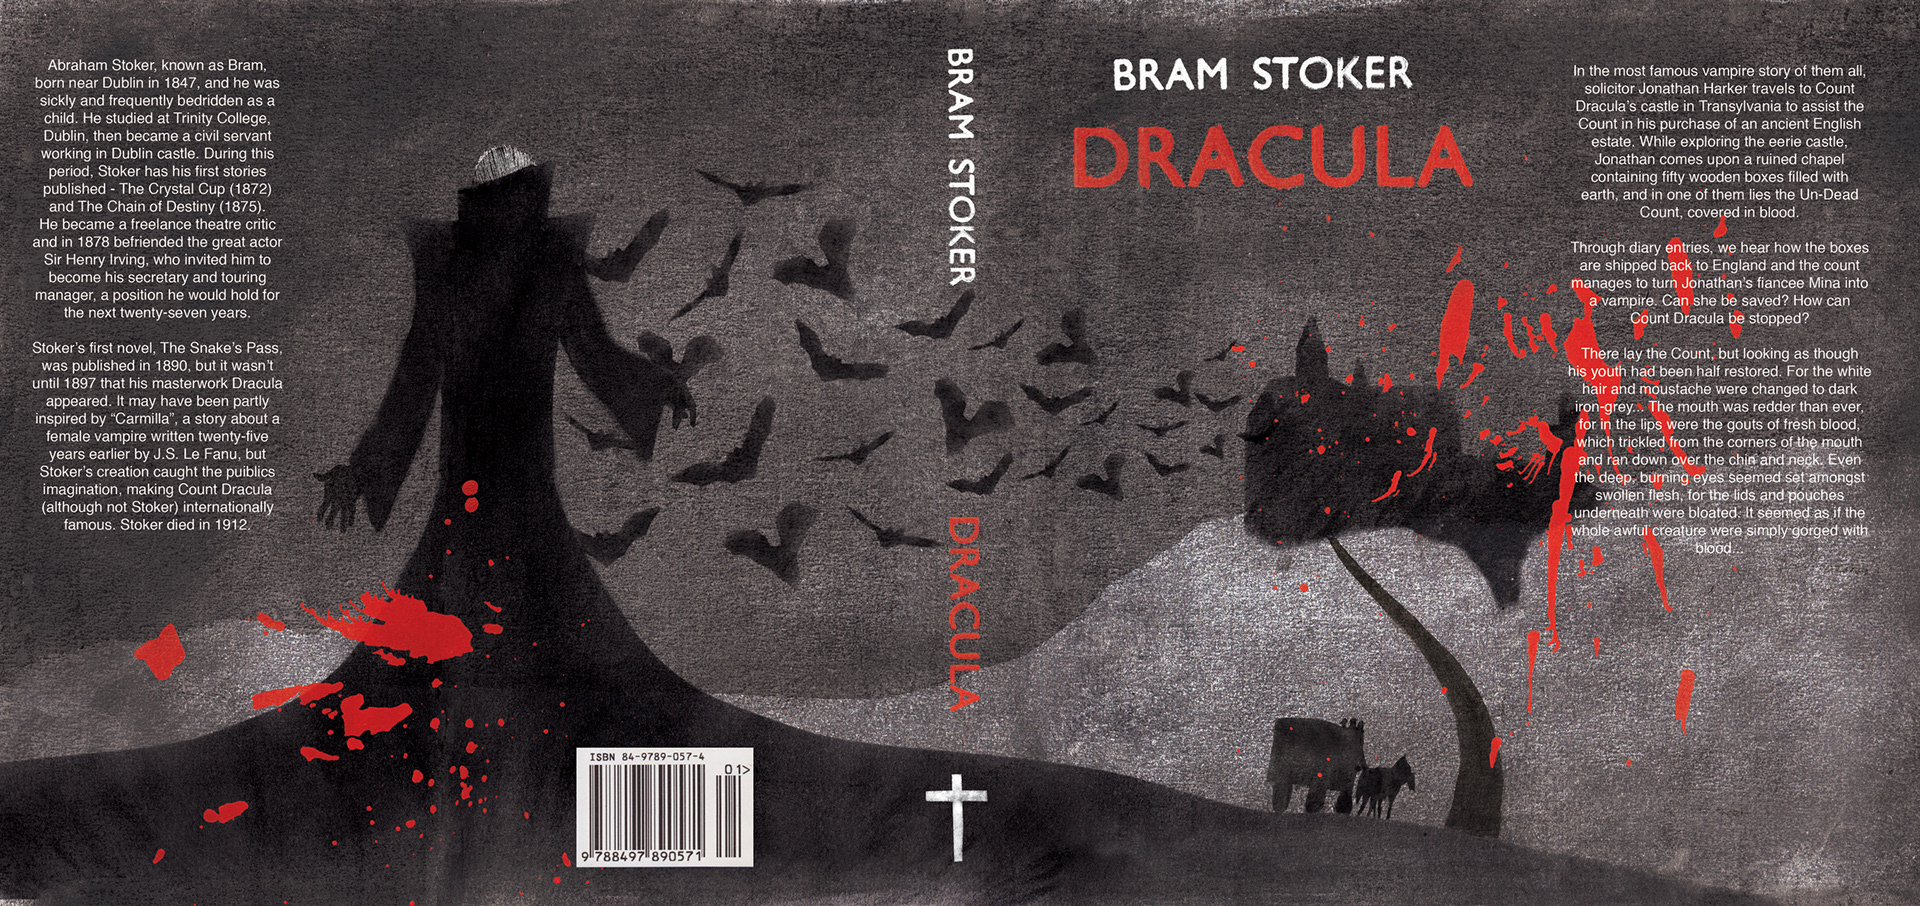 psychoanalytical analysis of bram stokers dracula A psychoanalytical reading of emily brontës bram stokers dracula a study on the fundamentals of the analysis and design of shell structures.